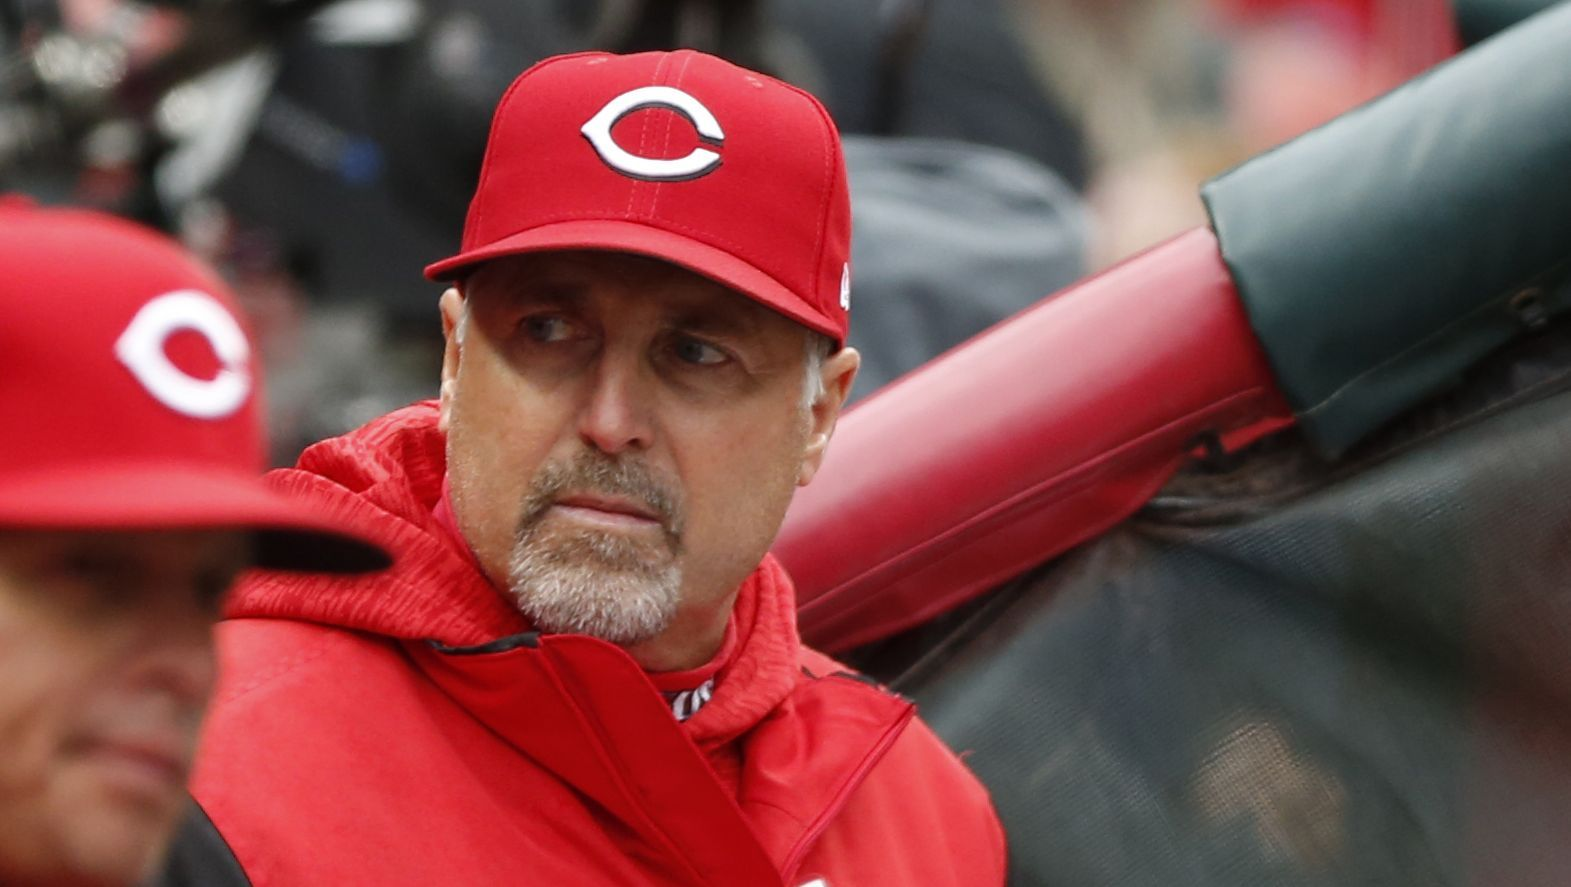 Price Not Right: Cincinnati Reds Manager Fired After 18 Games